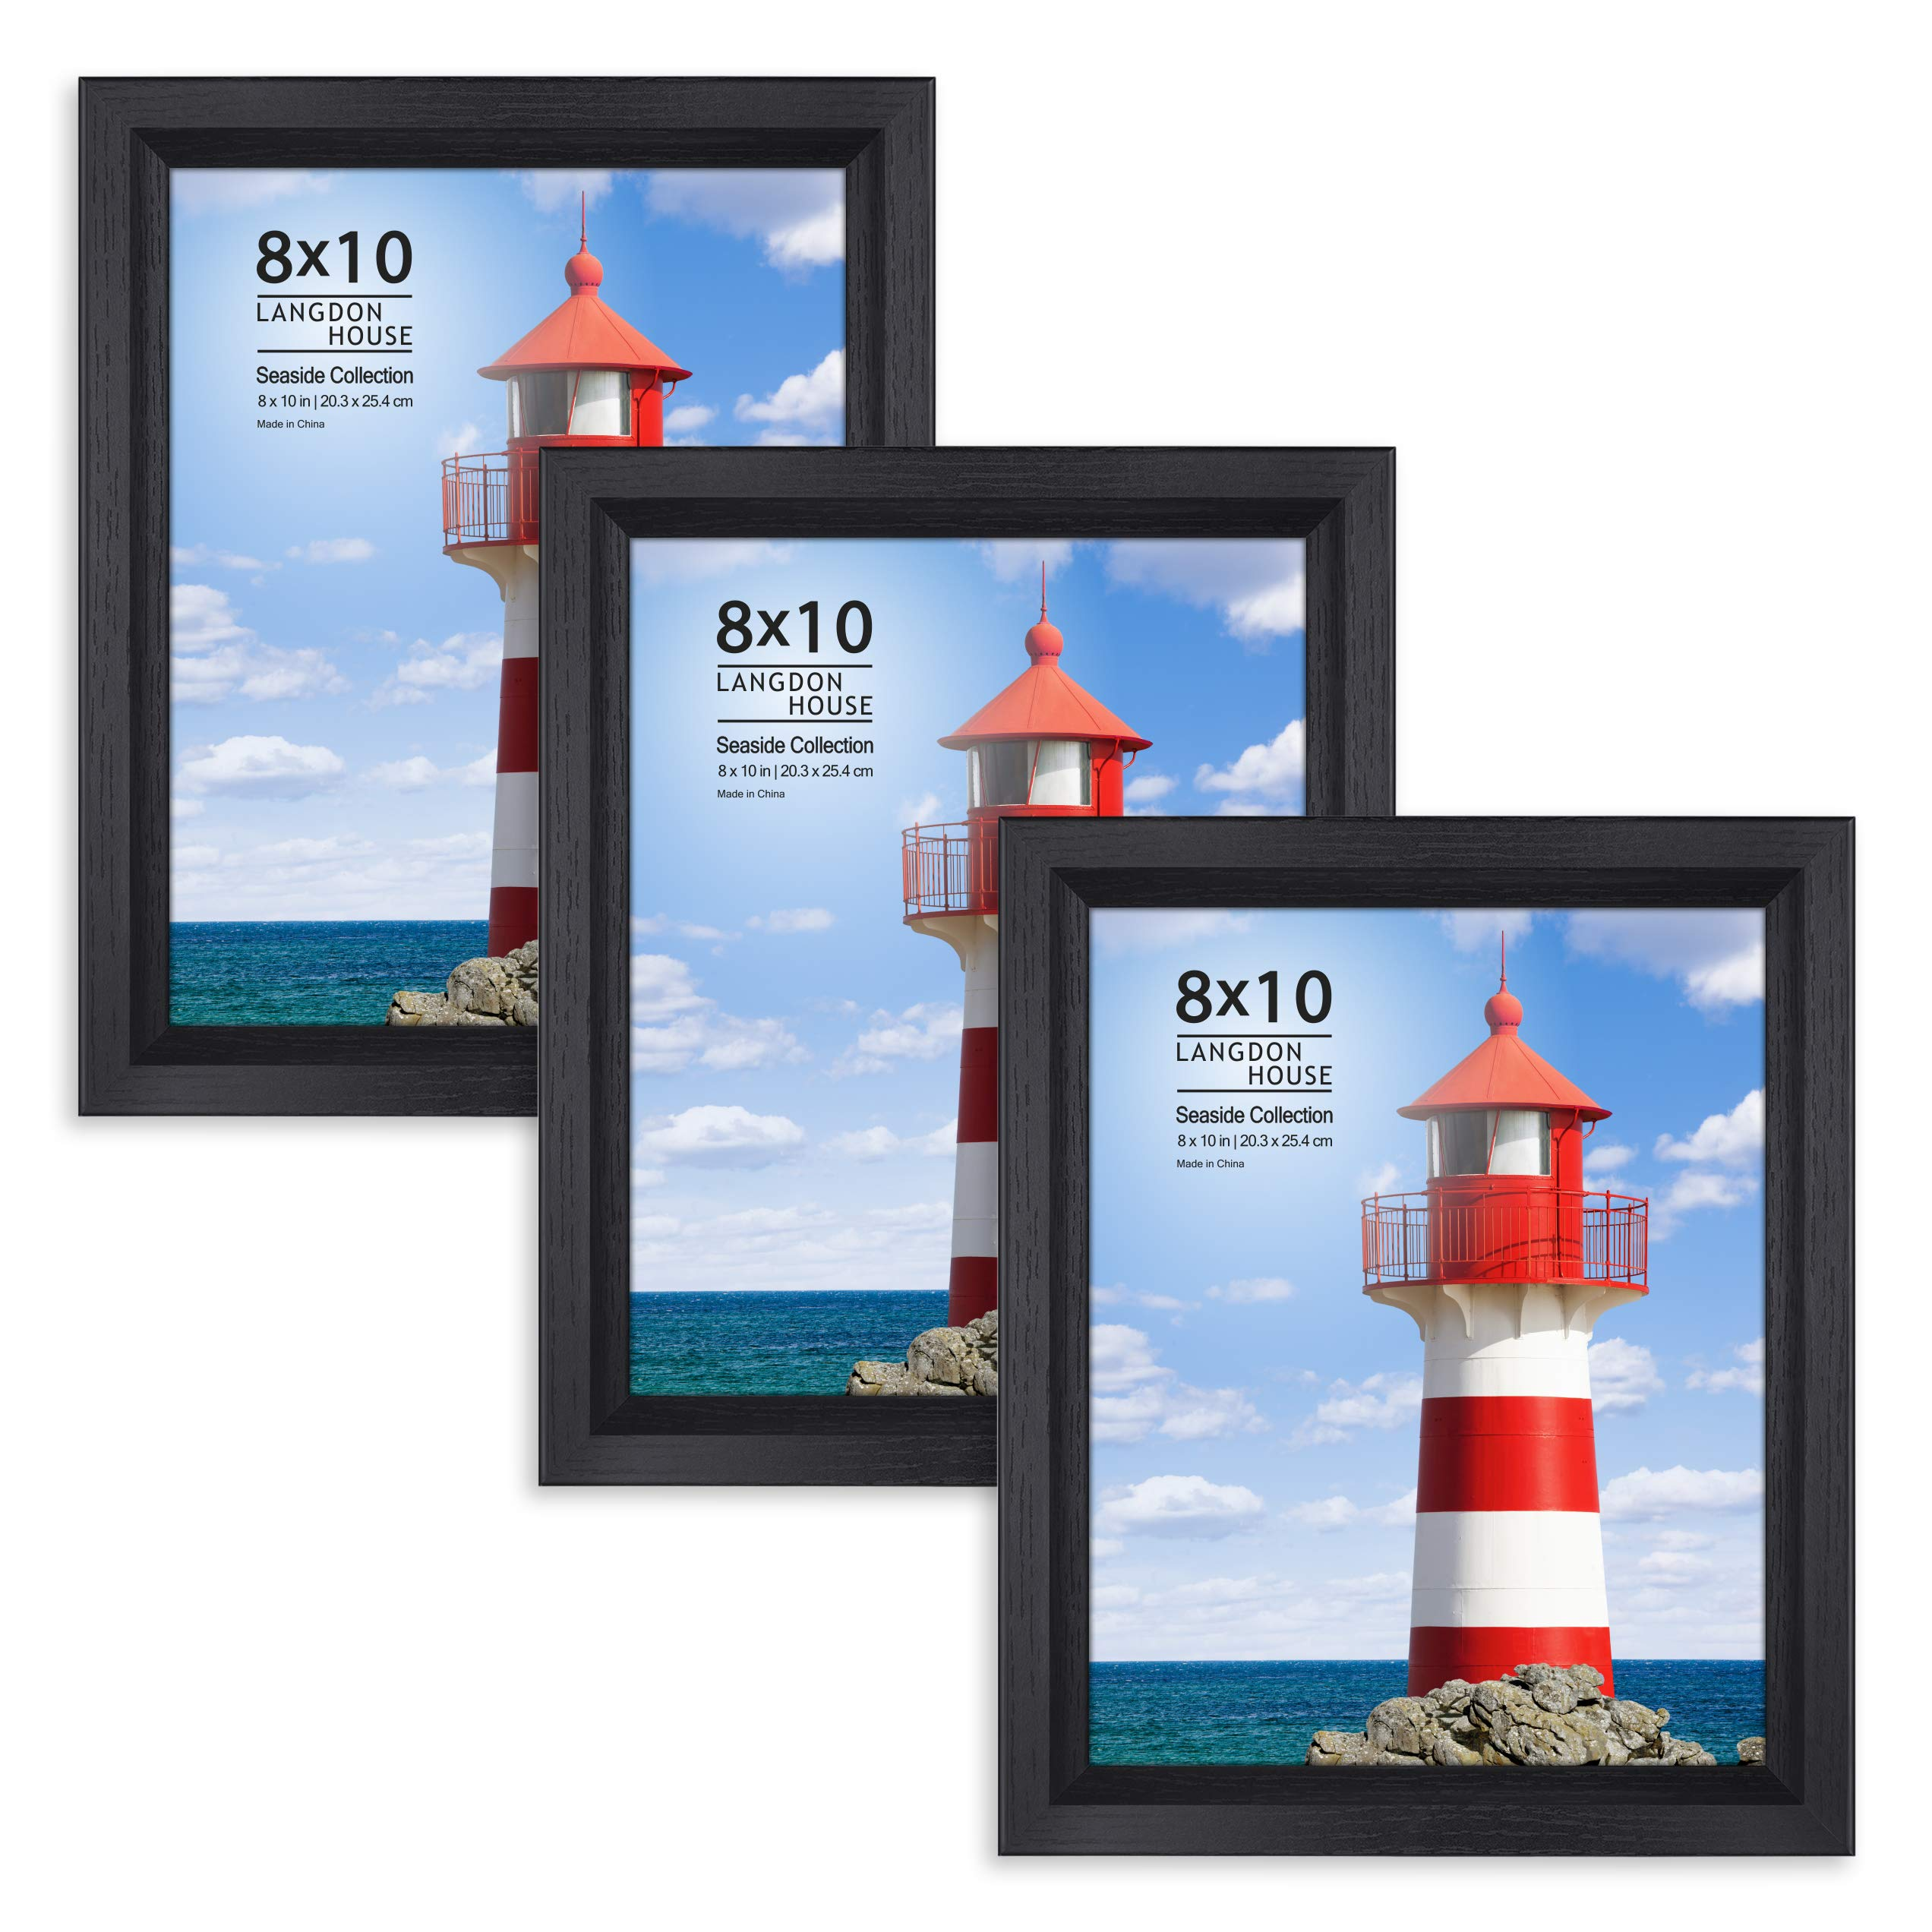 Langdons 8x10 Picture Frame (3 Pack, Black), Sturdy Wood Composite Photo Frame 8 x 10, Wall Mount or Table Top, Set of 3 Seaside Collection by Langdons